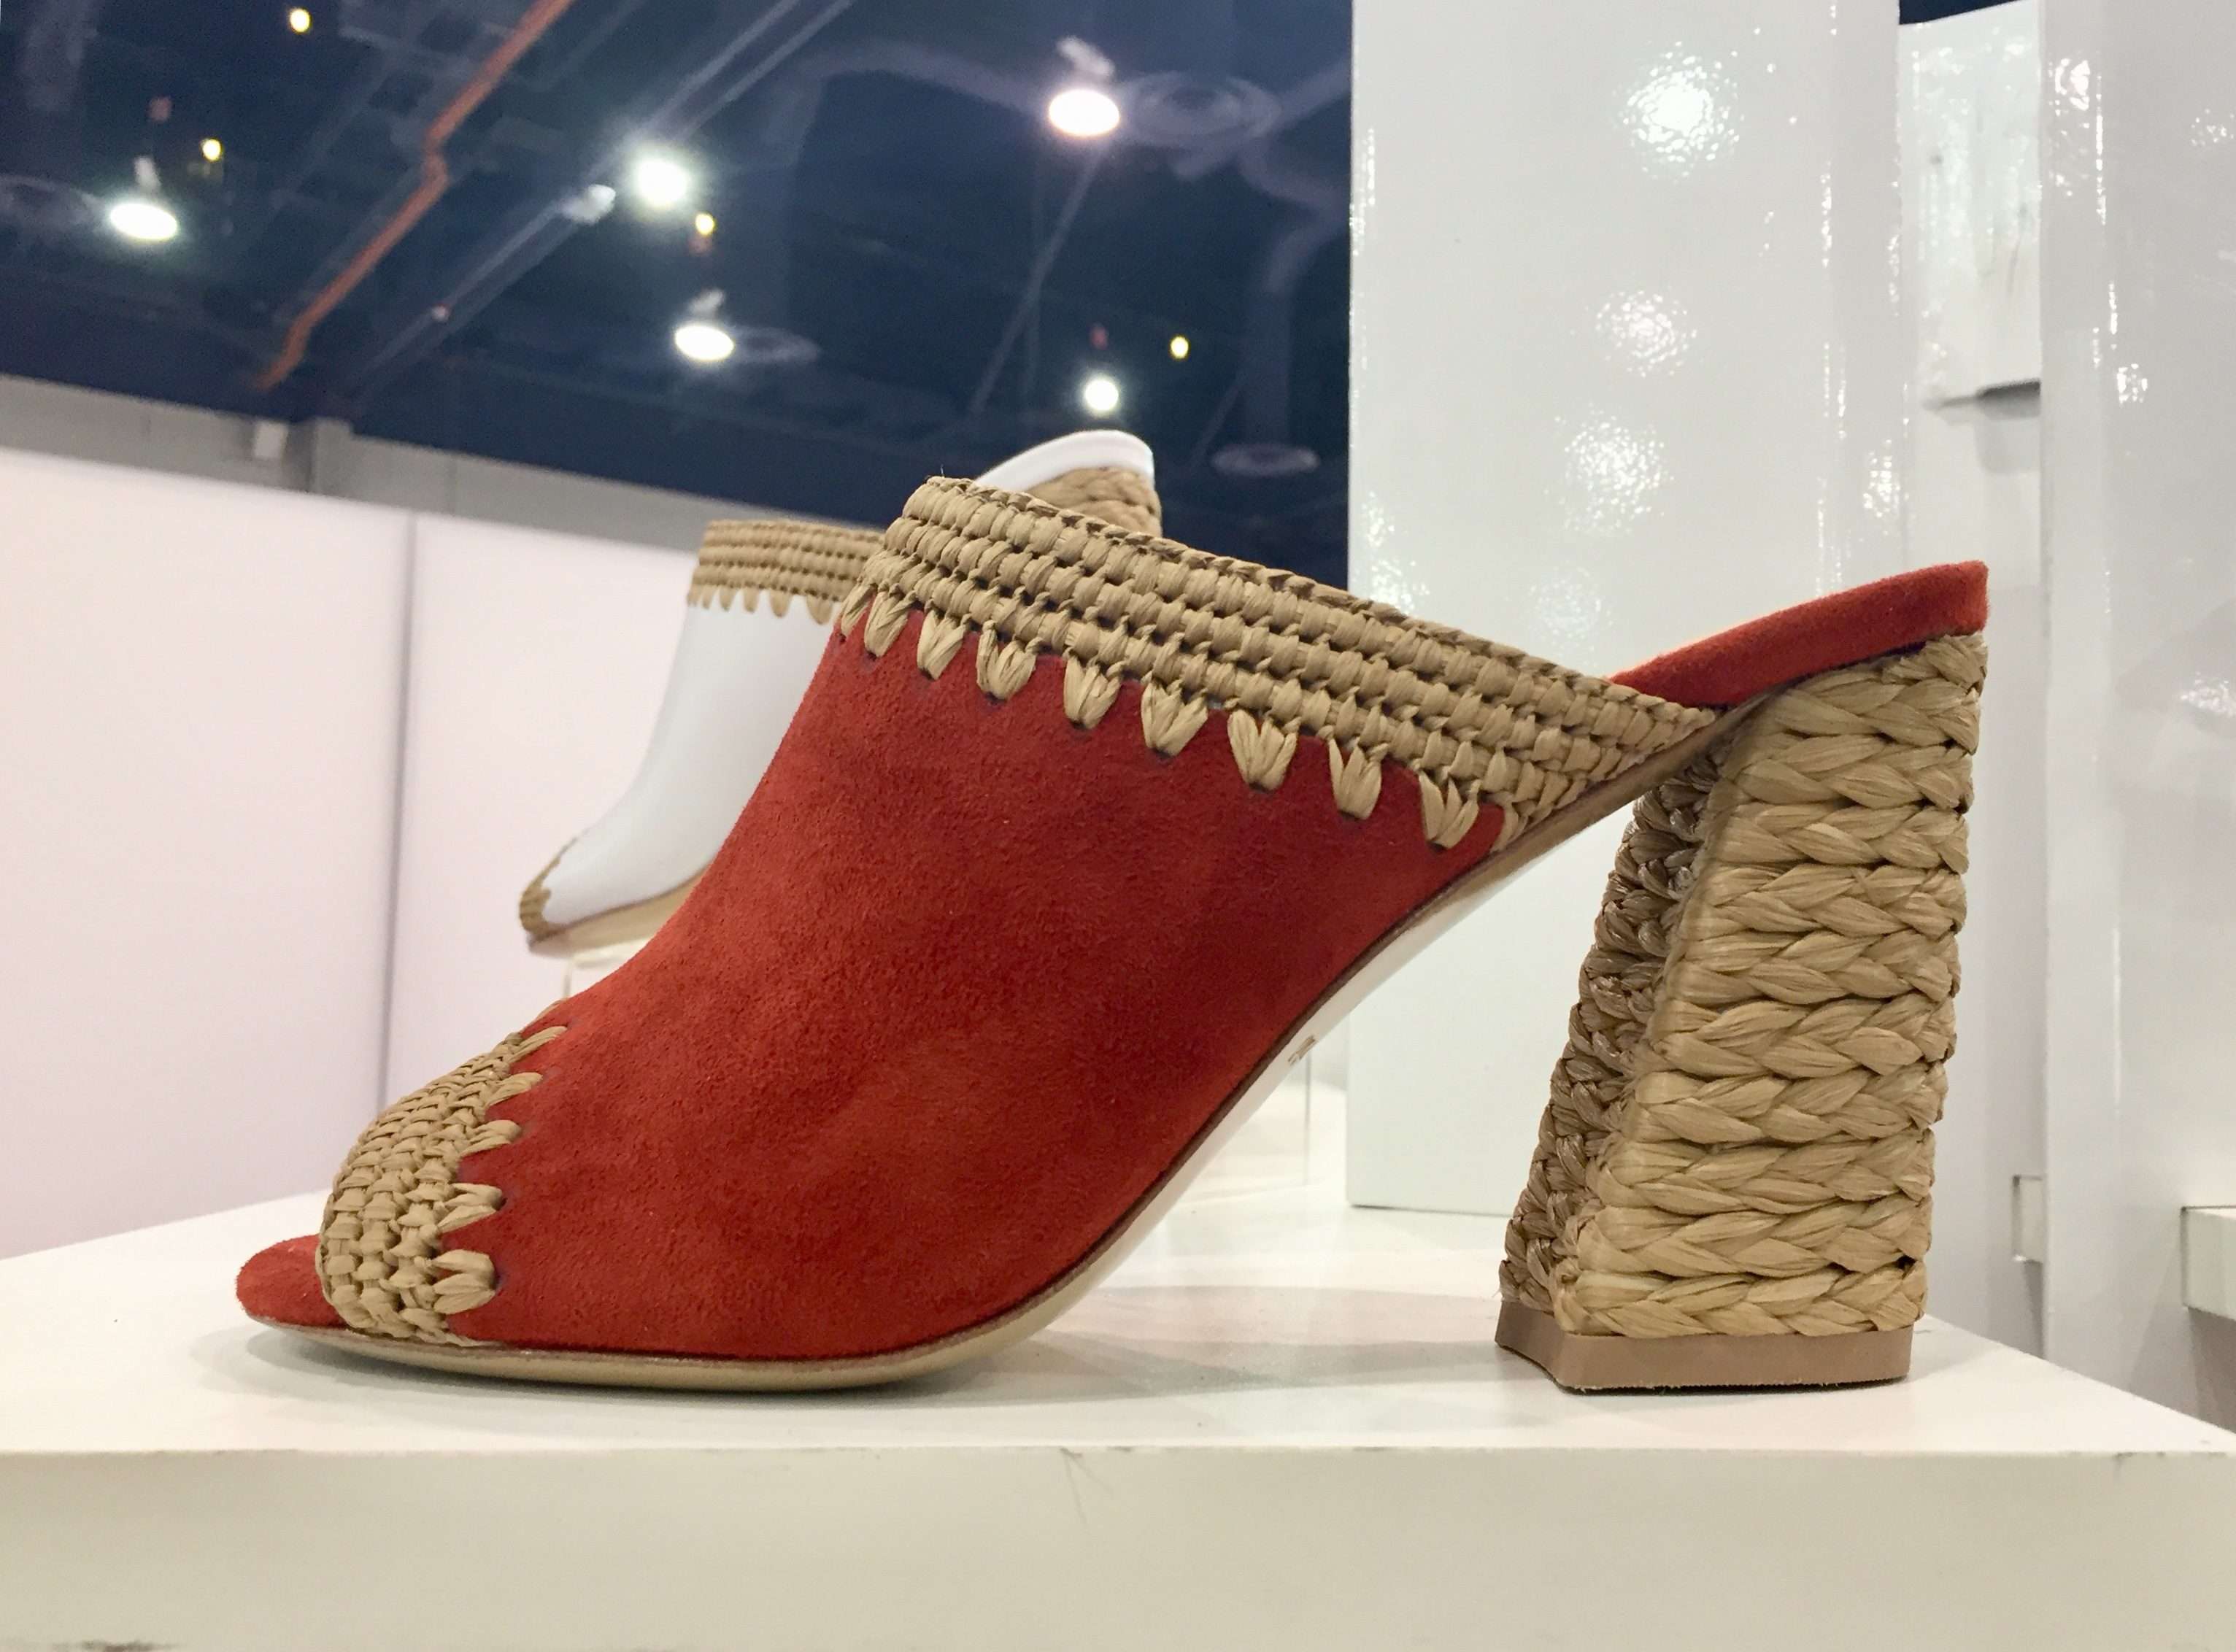 A new espadrille block heel style from Charles David.